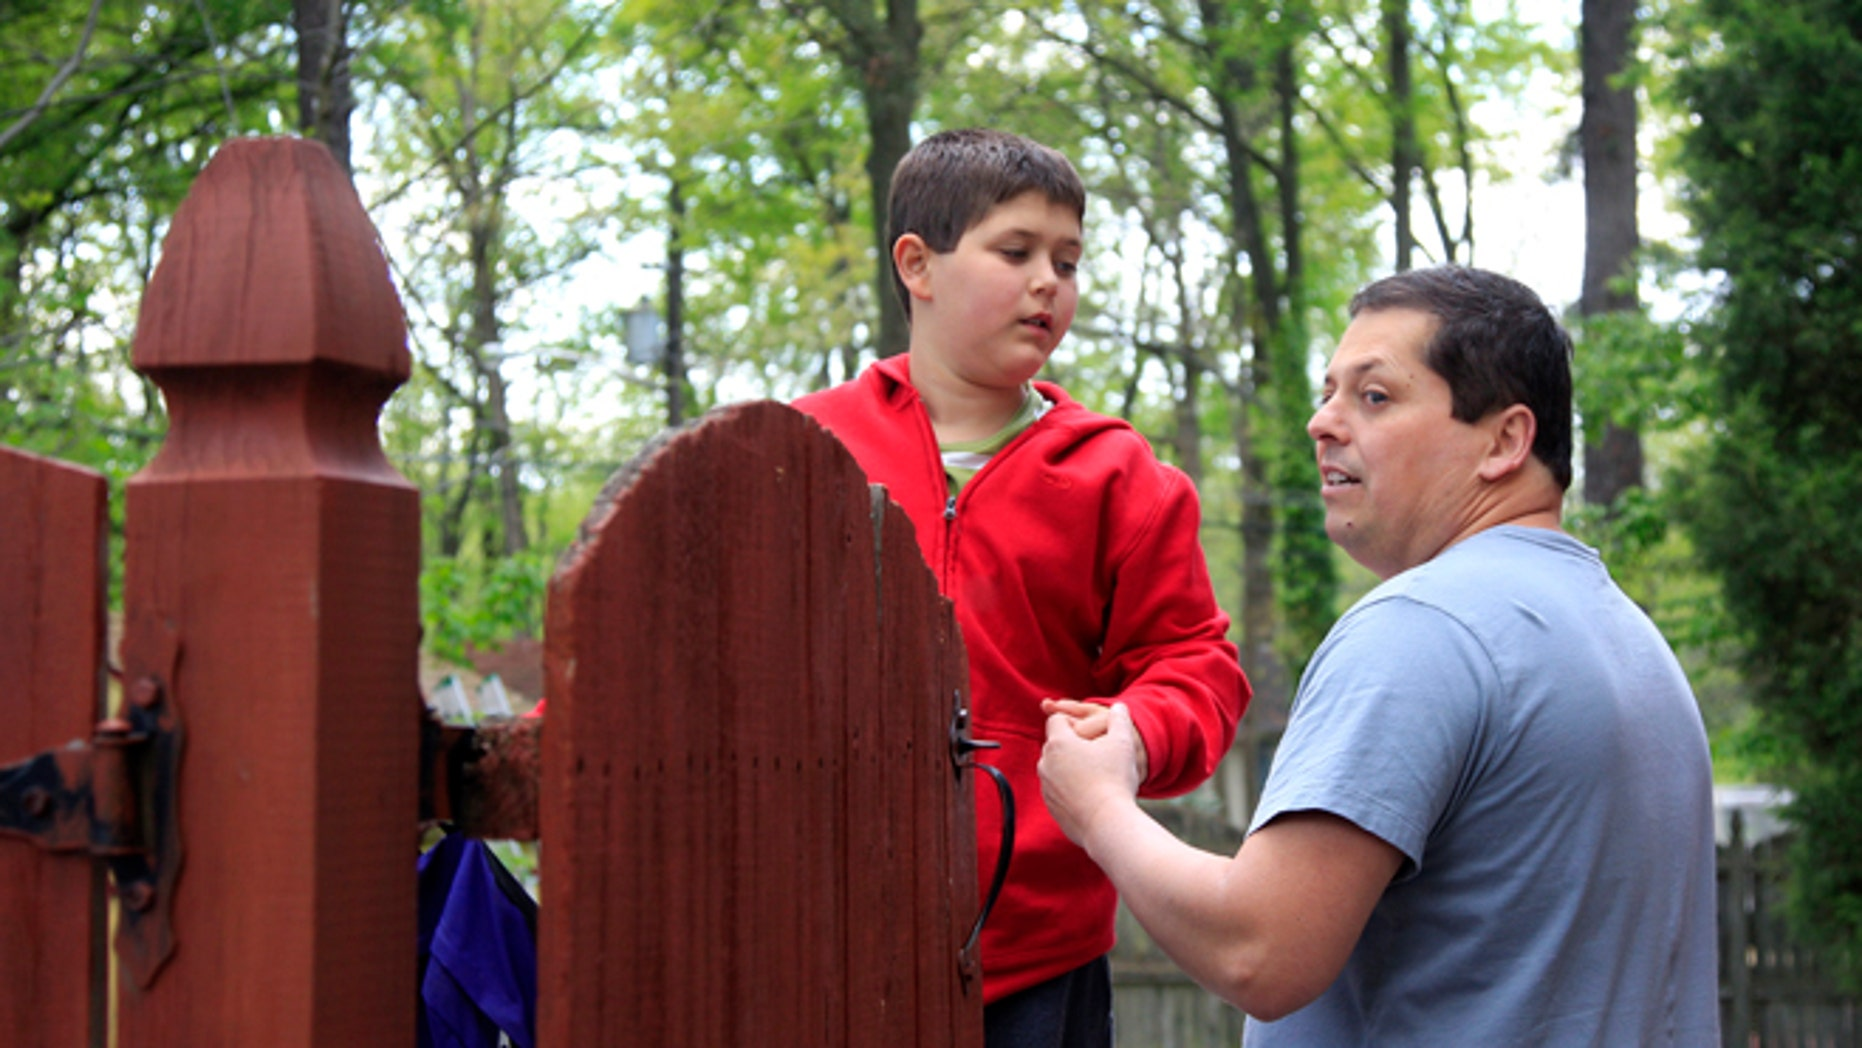 April 25, 2012: Stuart Chaifetz stands with his son Akian Chaifetz, 10, at their home in Cherry Hill, N.J.